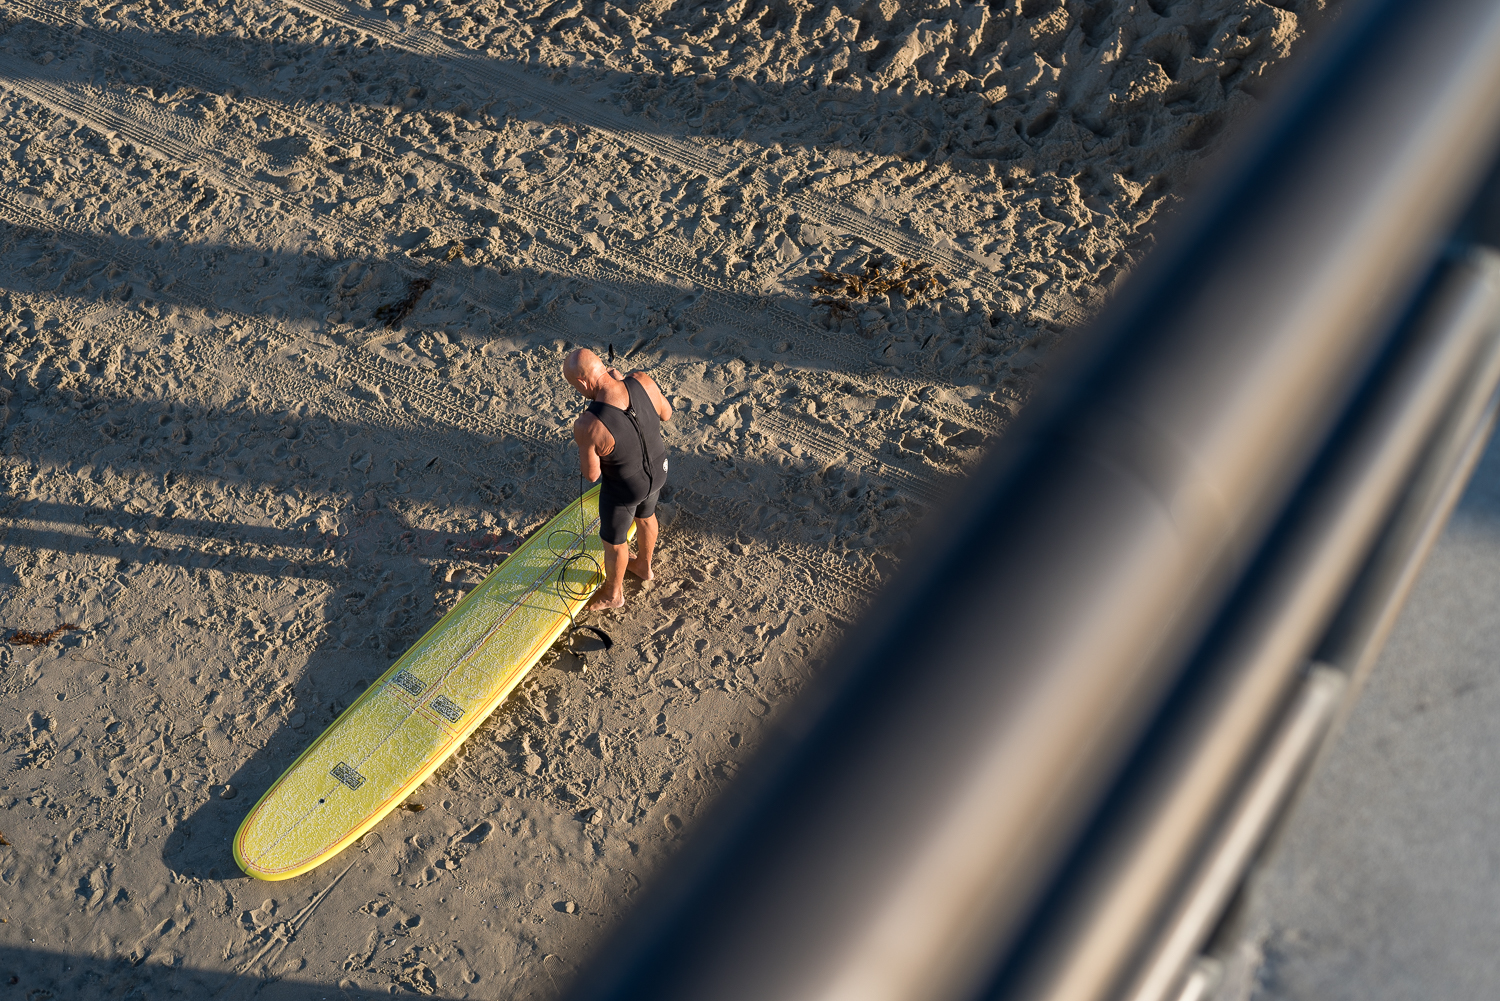 california surf spots huntington beach_.jpg